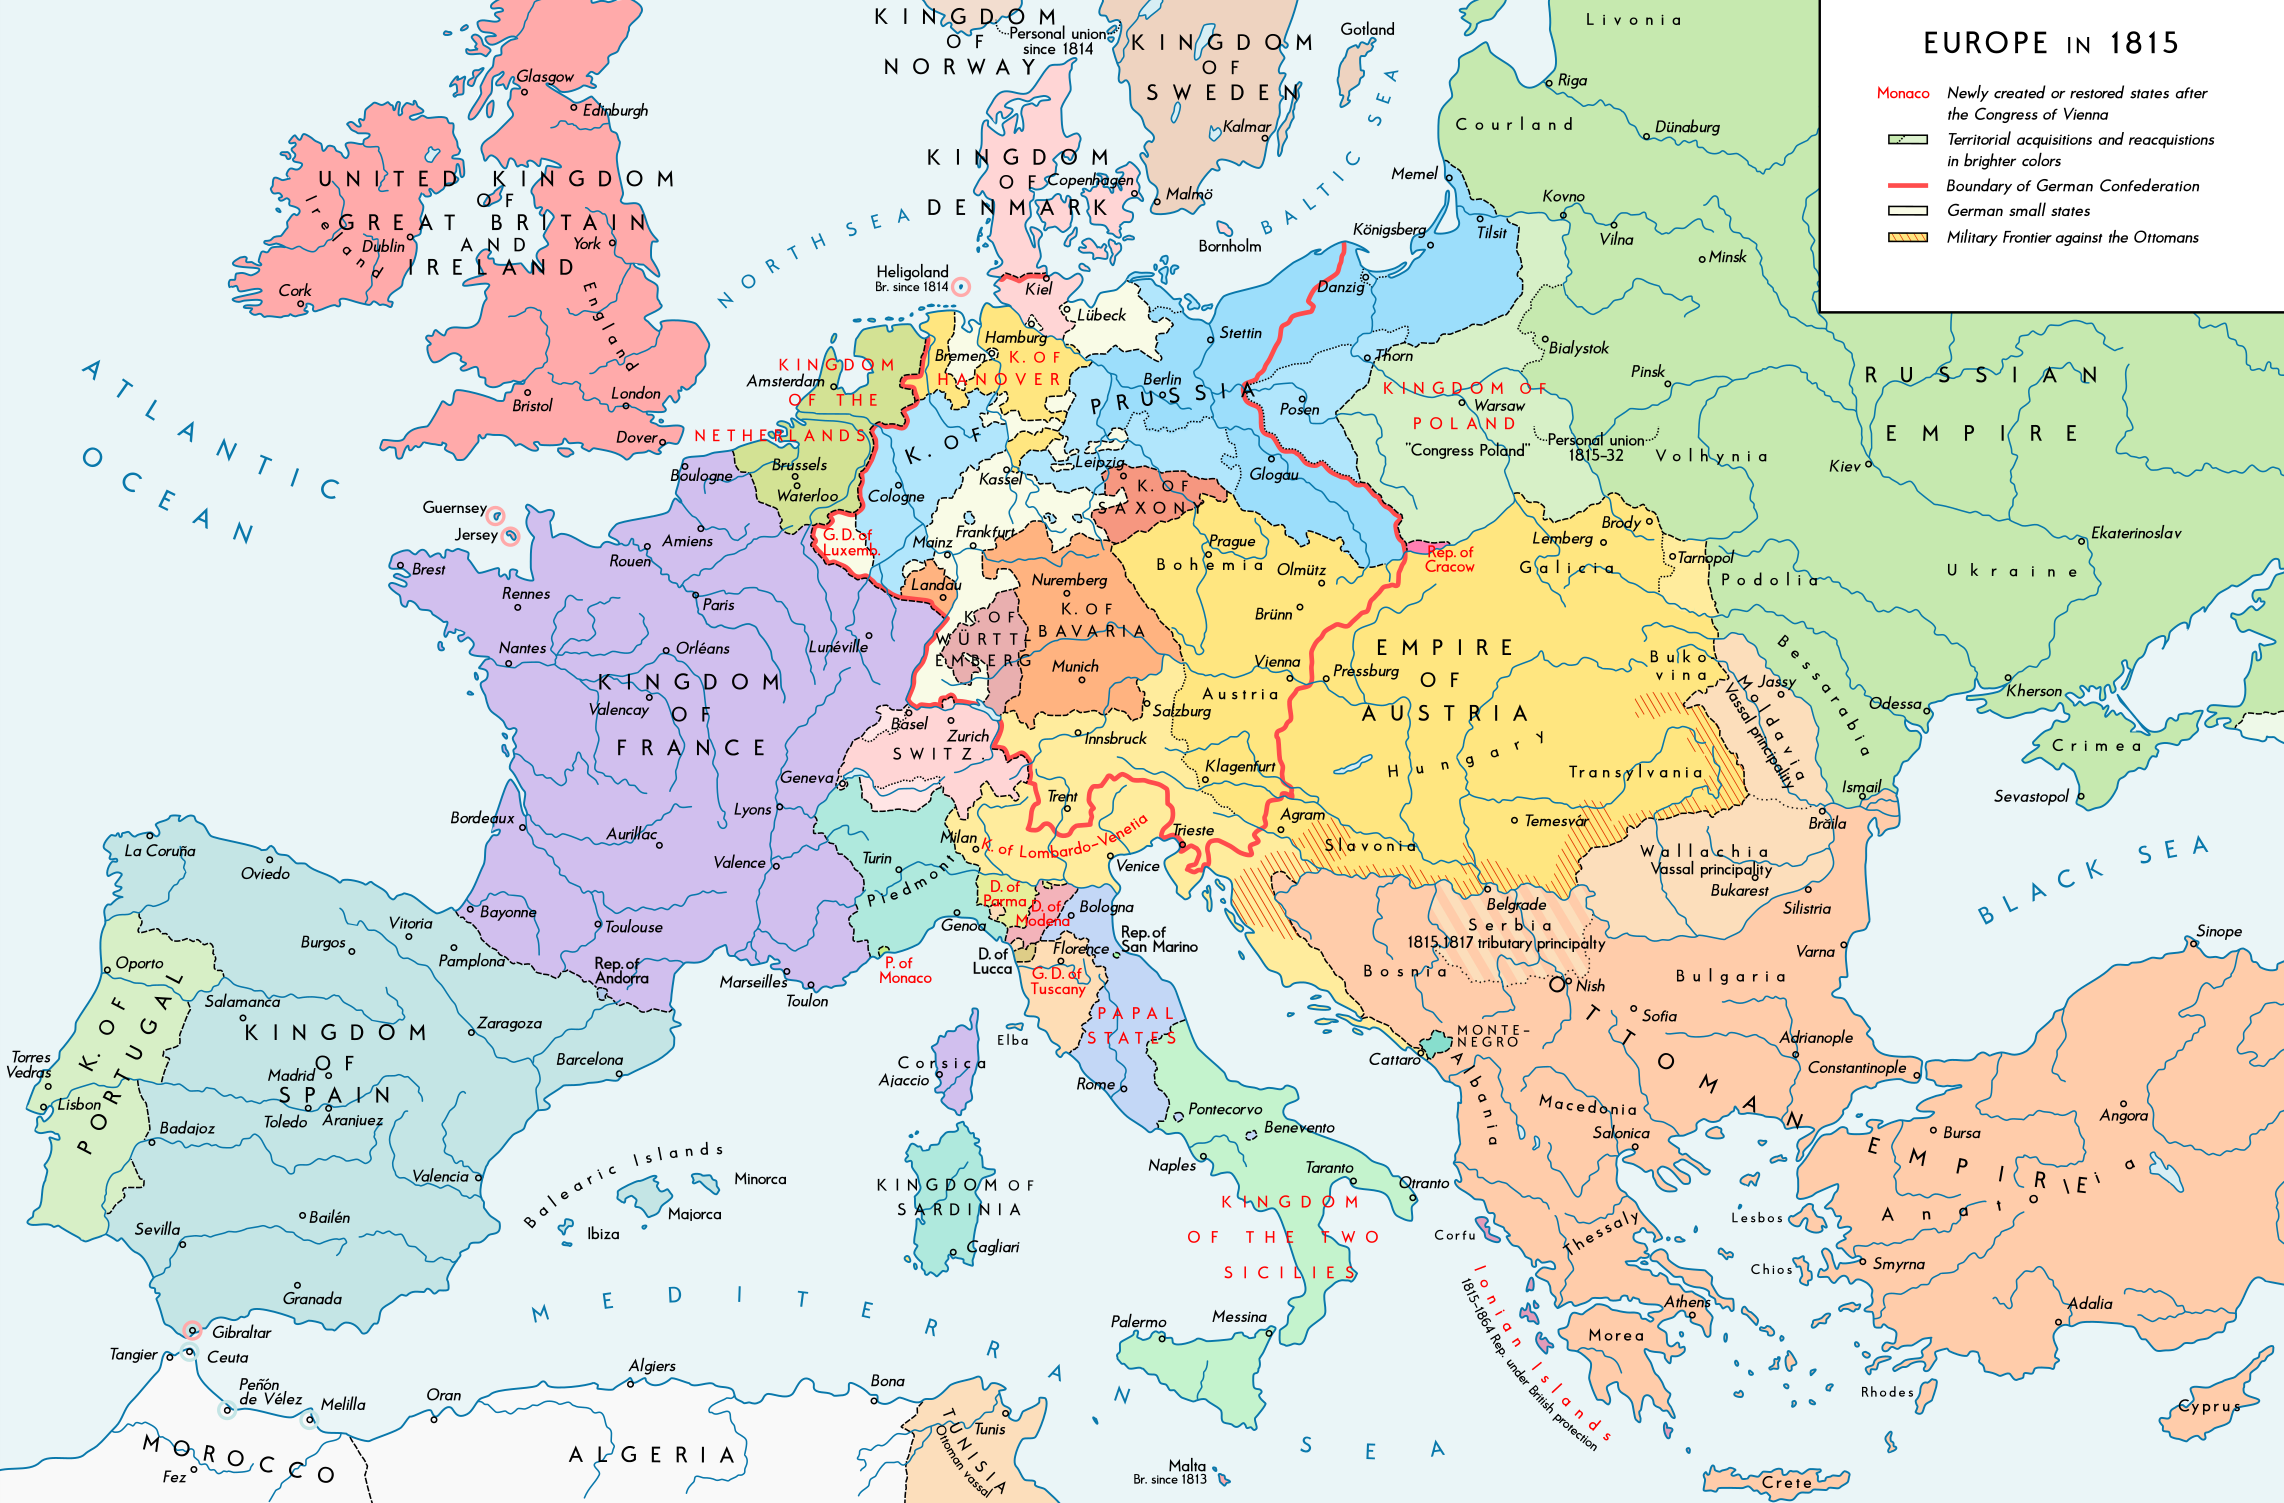 Europe Map.File Europe 1815 Map En Png Wikimedia Commons